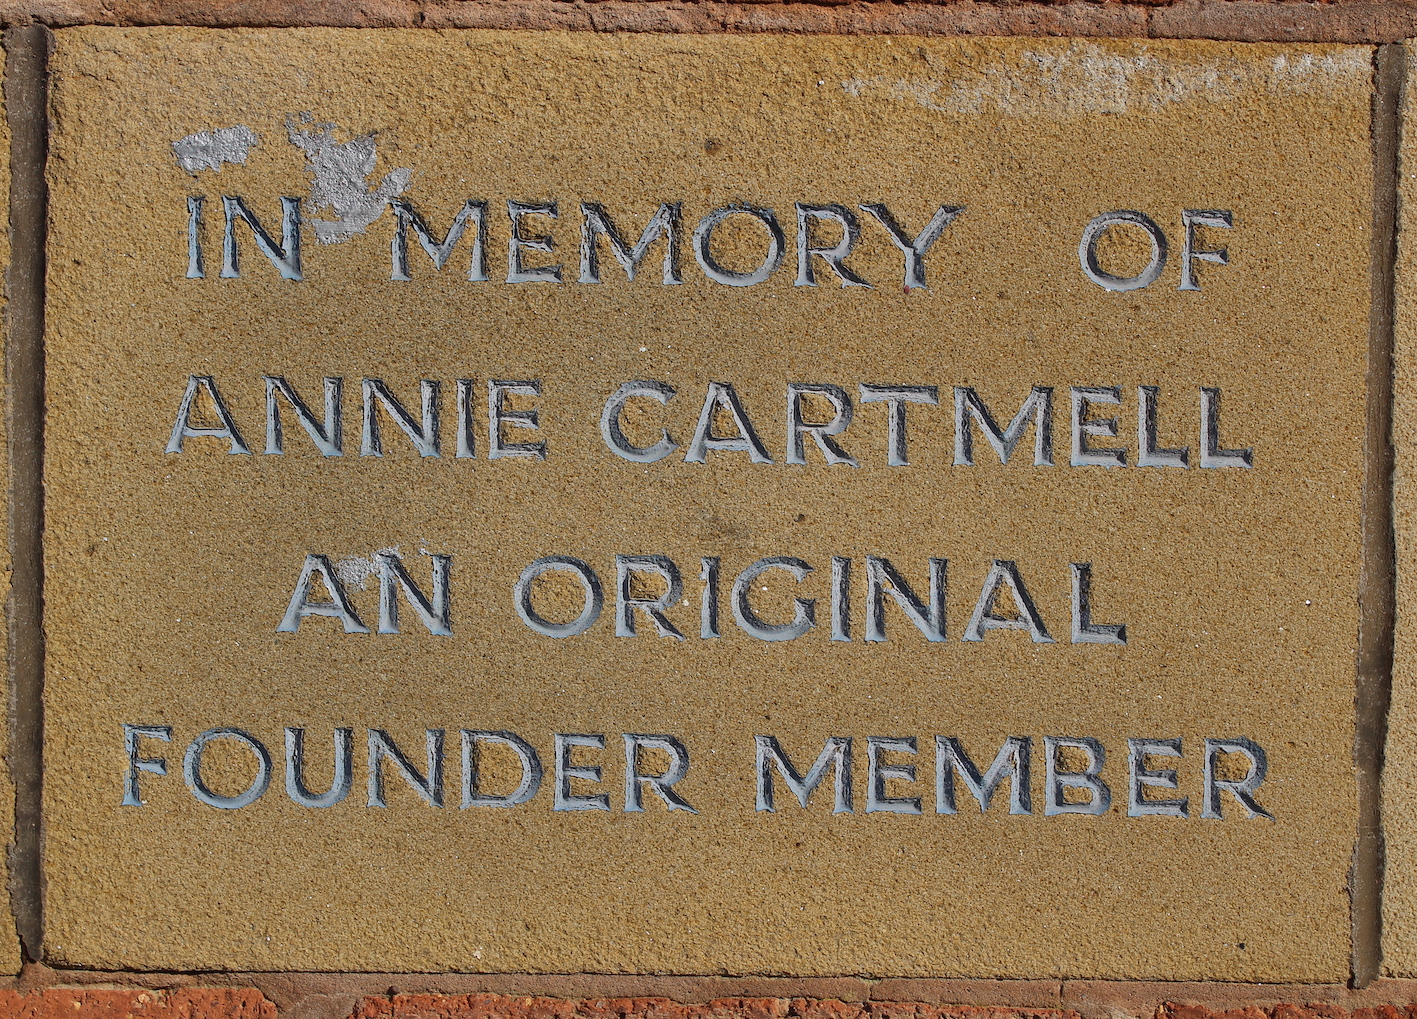 Memorial stone for Annie Cartmell